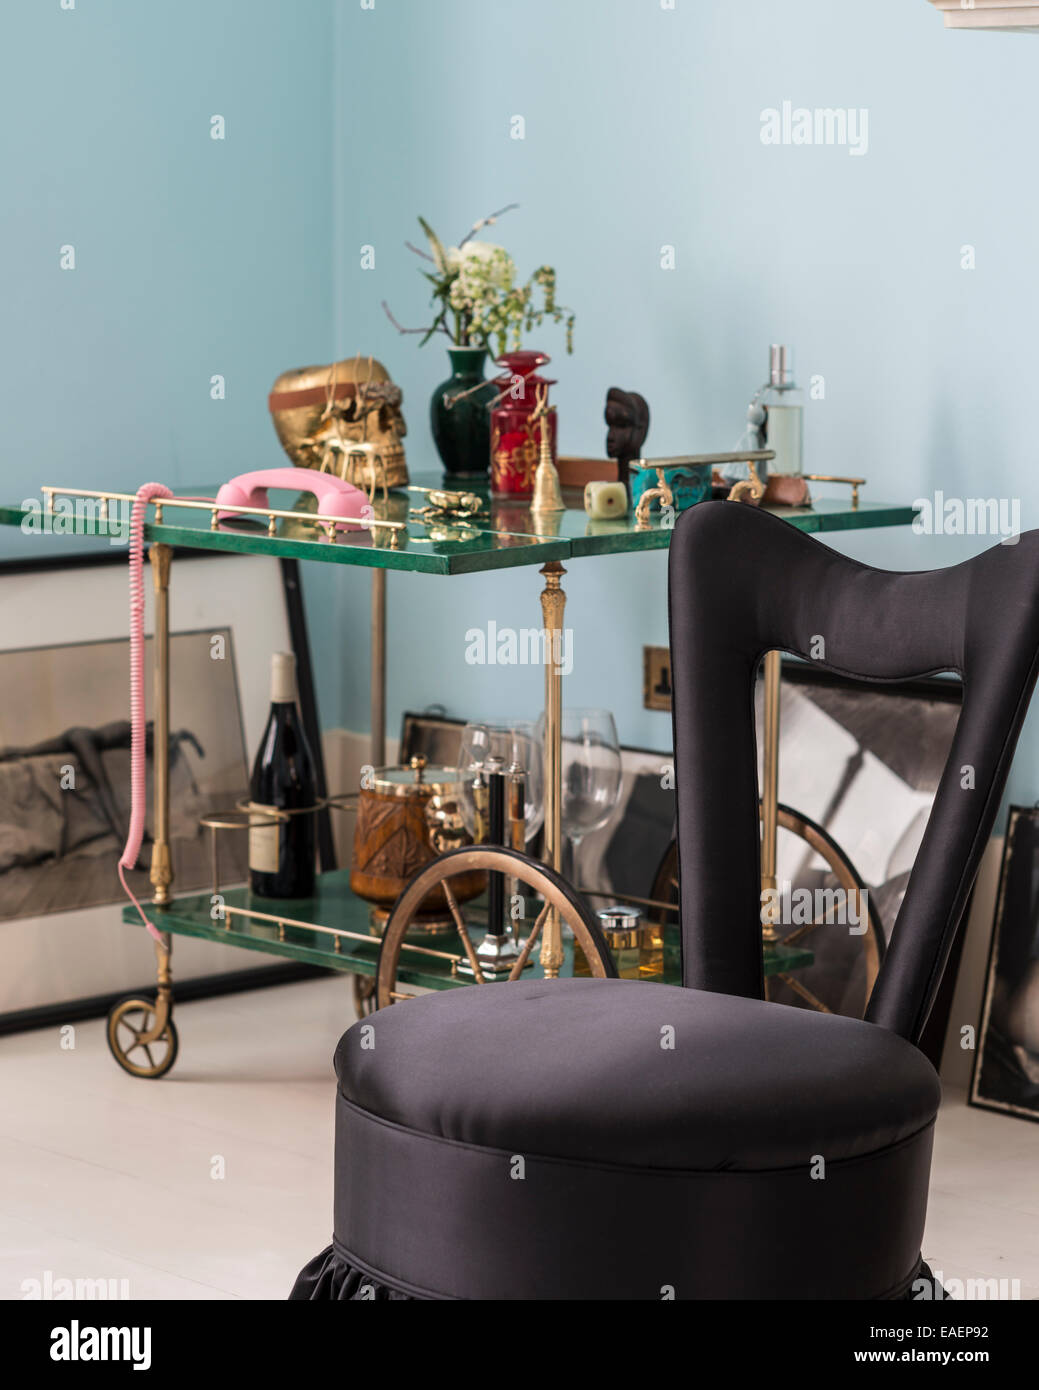 Black Silk Upholstered Chair In Front Of Malachite Drinks Trolley From  Samir Hadcheti   Stock Image